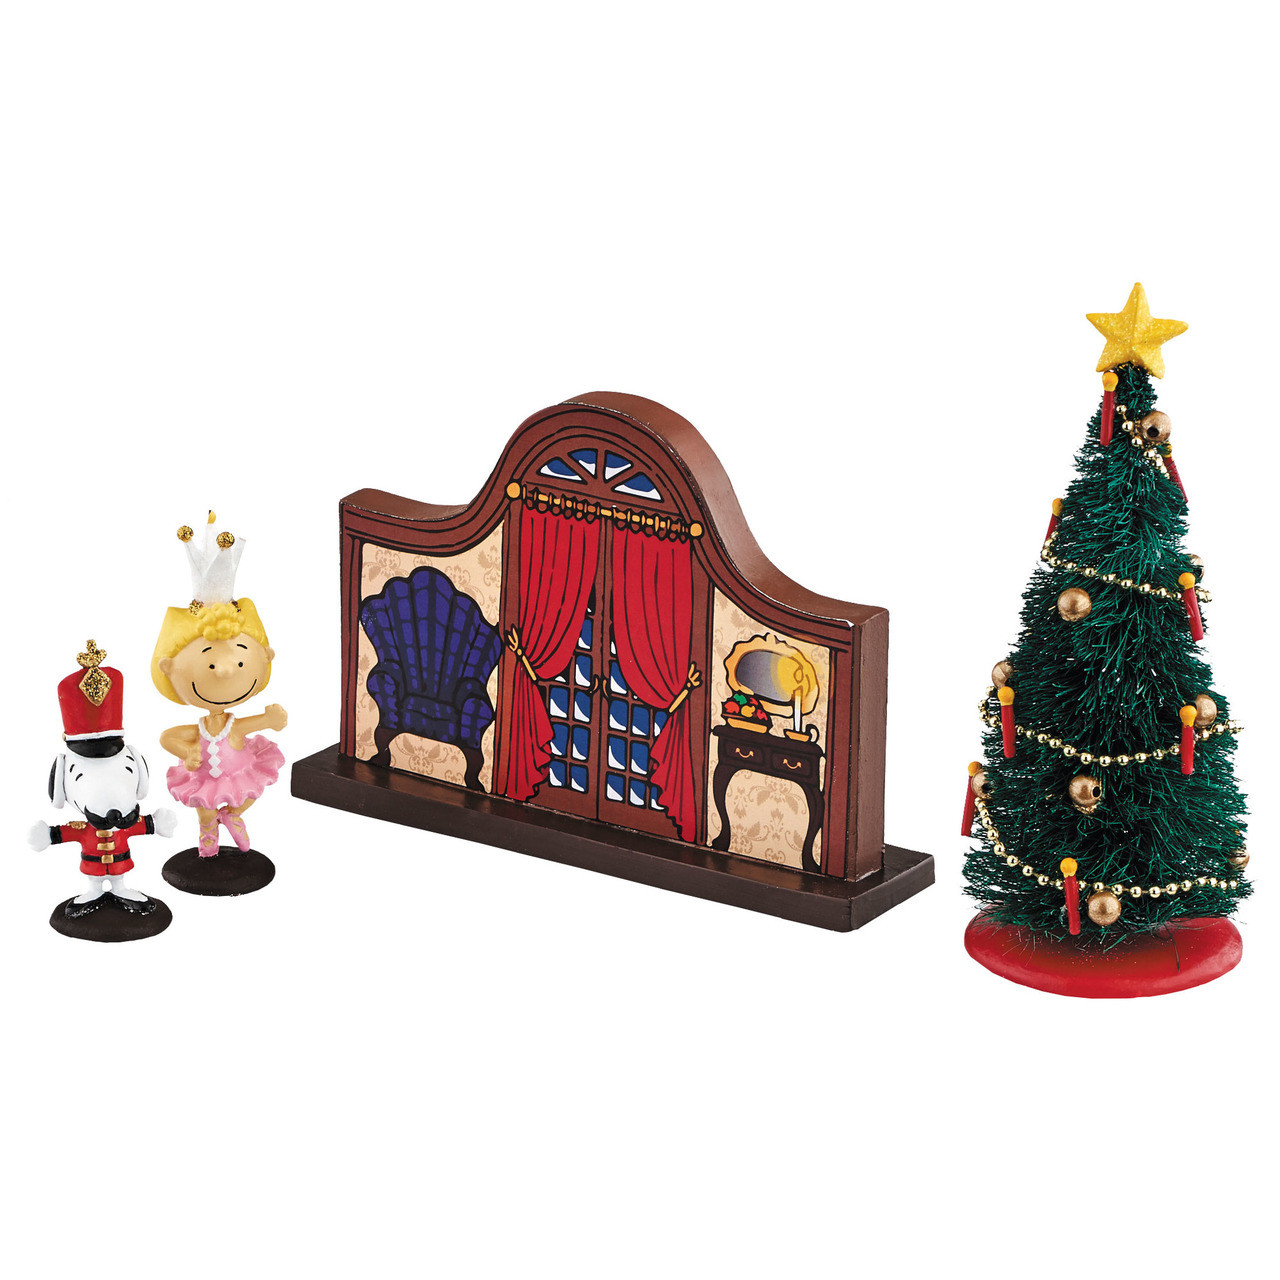 Peanuts The Nutcracker Set With Snoopy Sally By Department 56